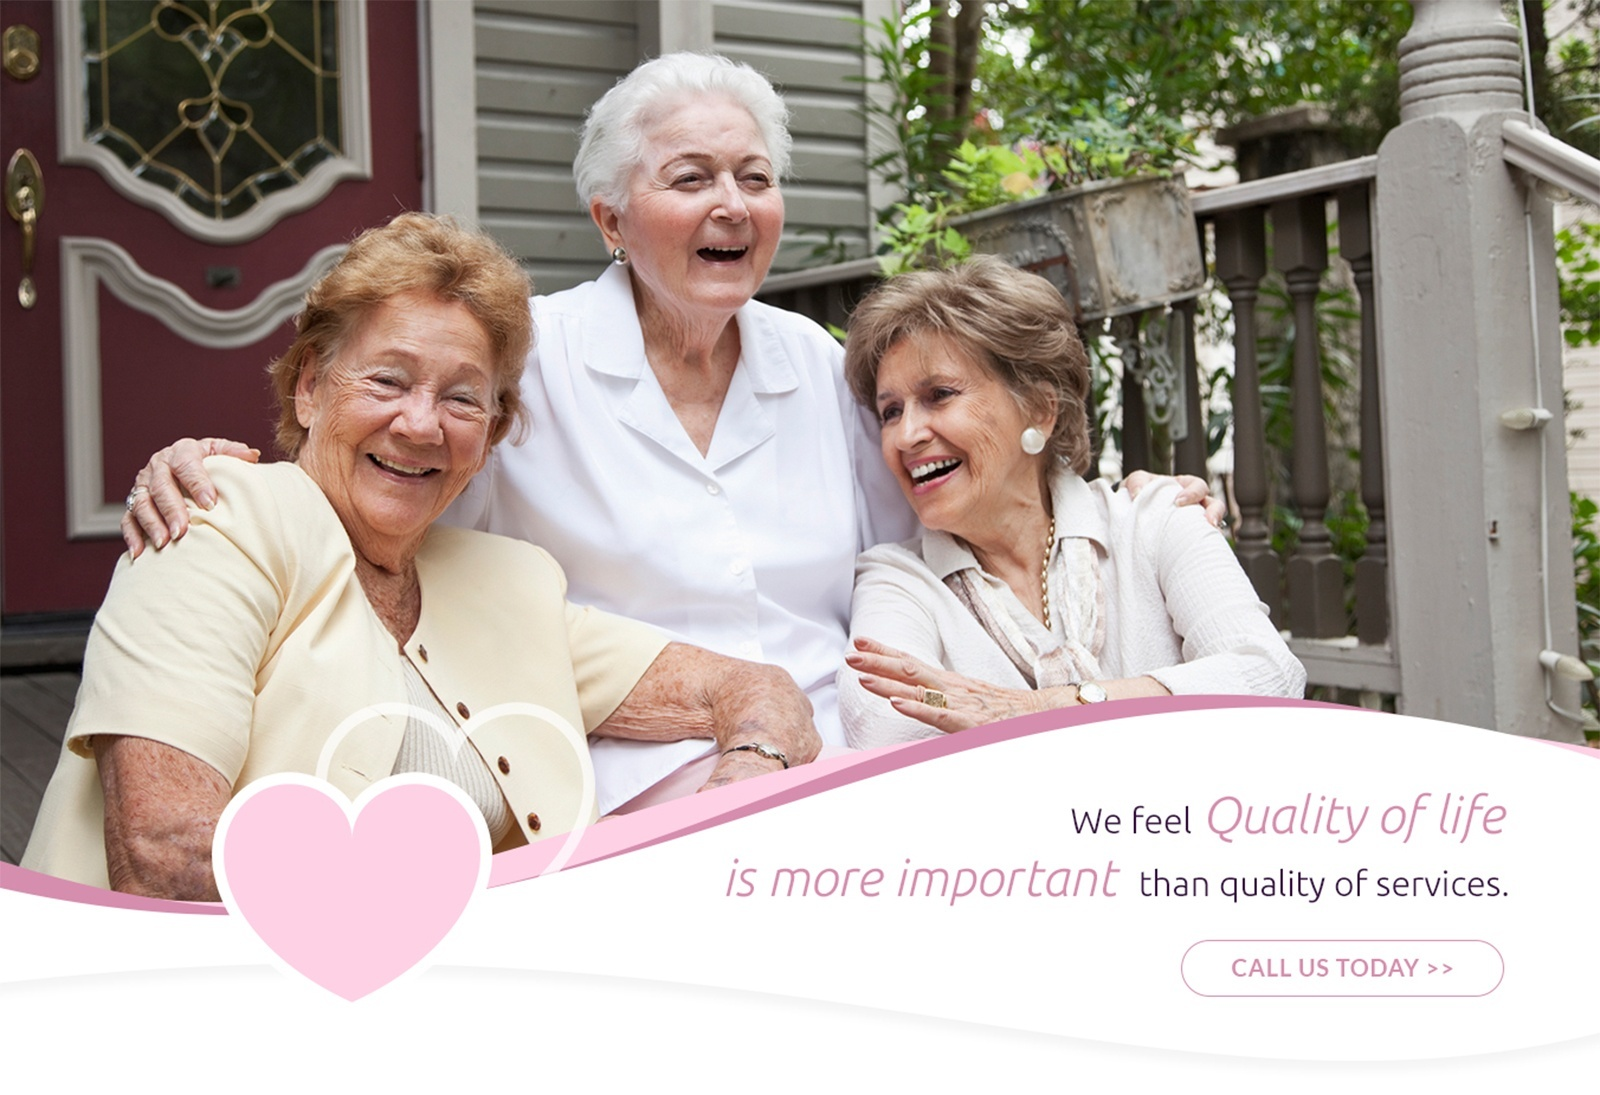 We Feel Quality of Life is more Important than Quality of Services